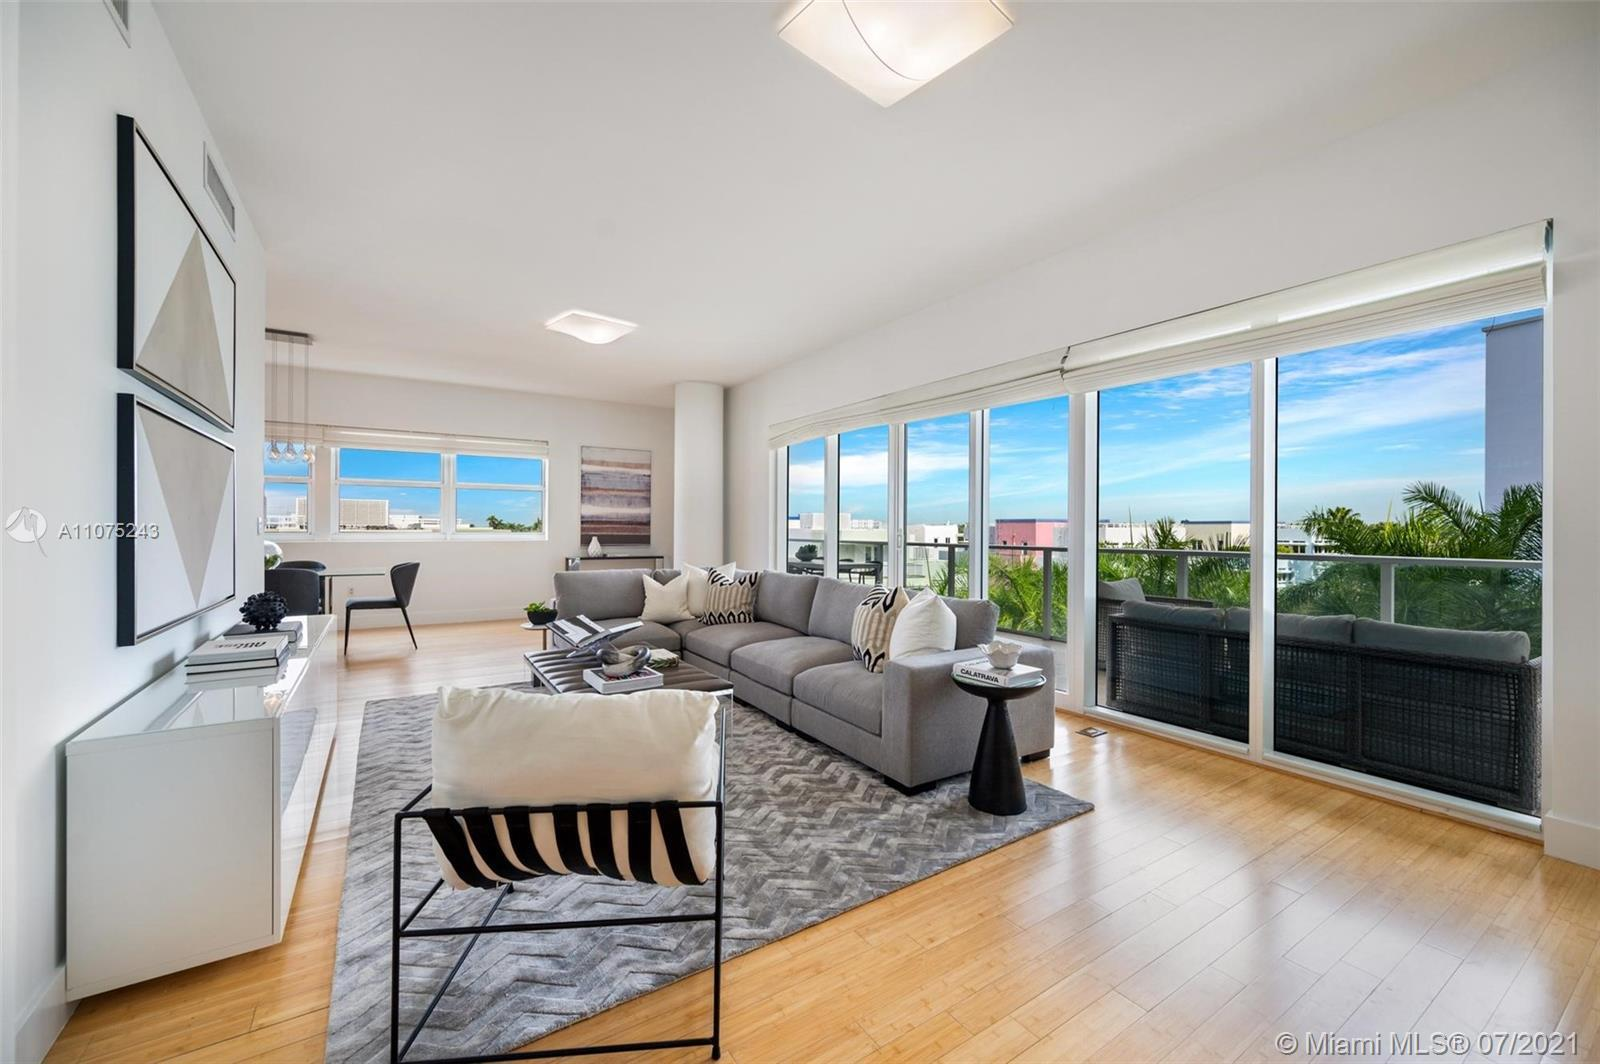 Situated within the lush Aqua community on Allison Island, this waterfront condo offers an elegant r